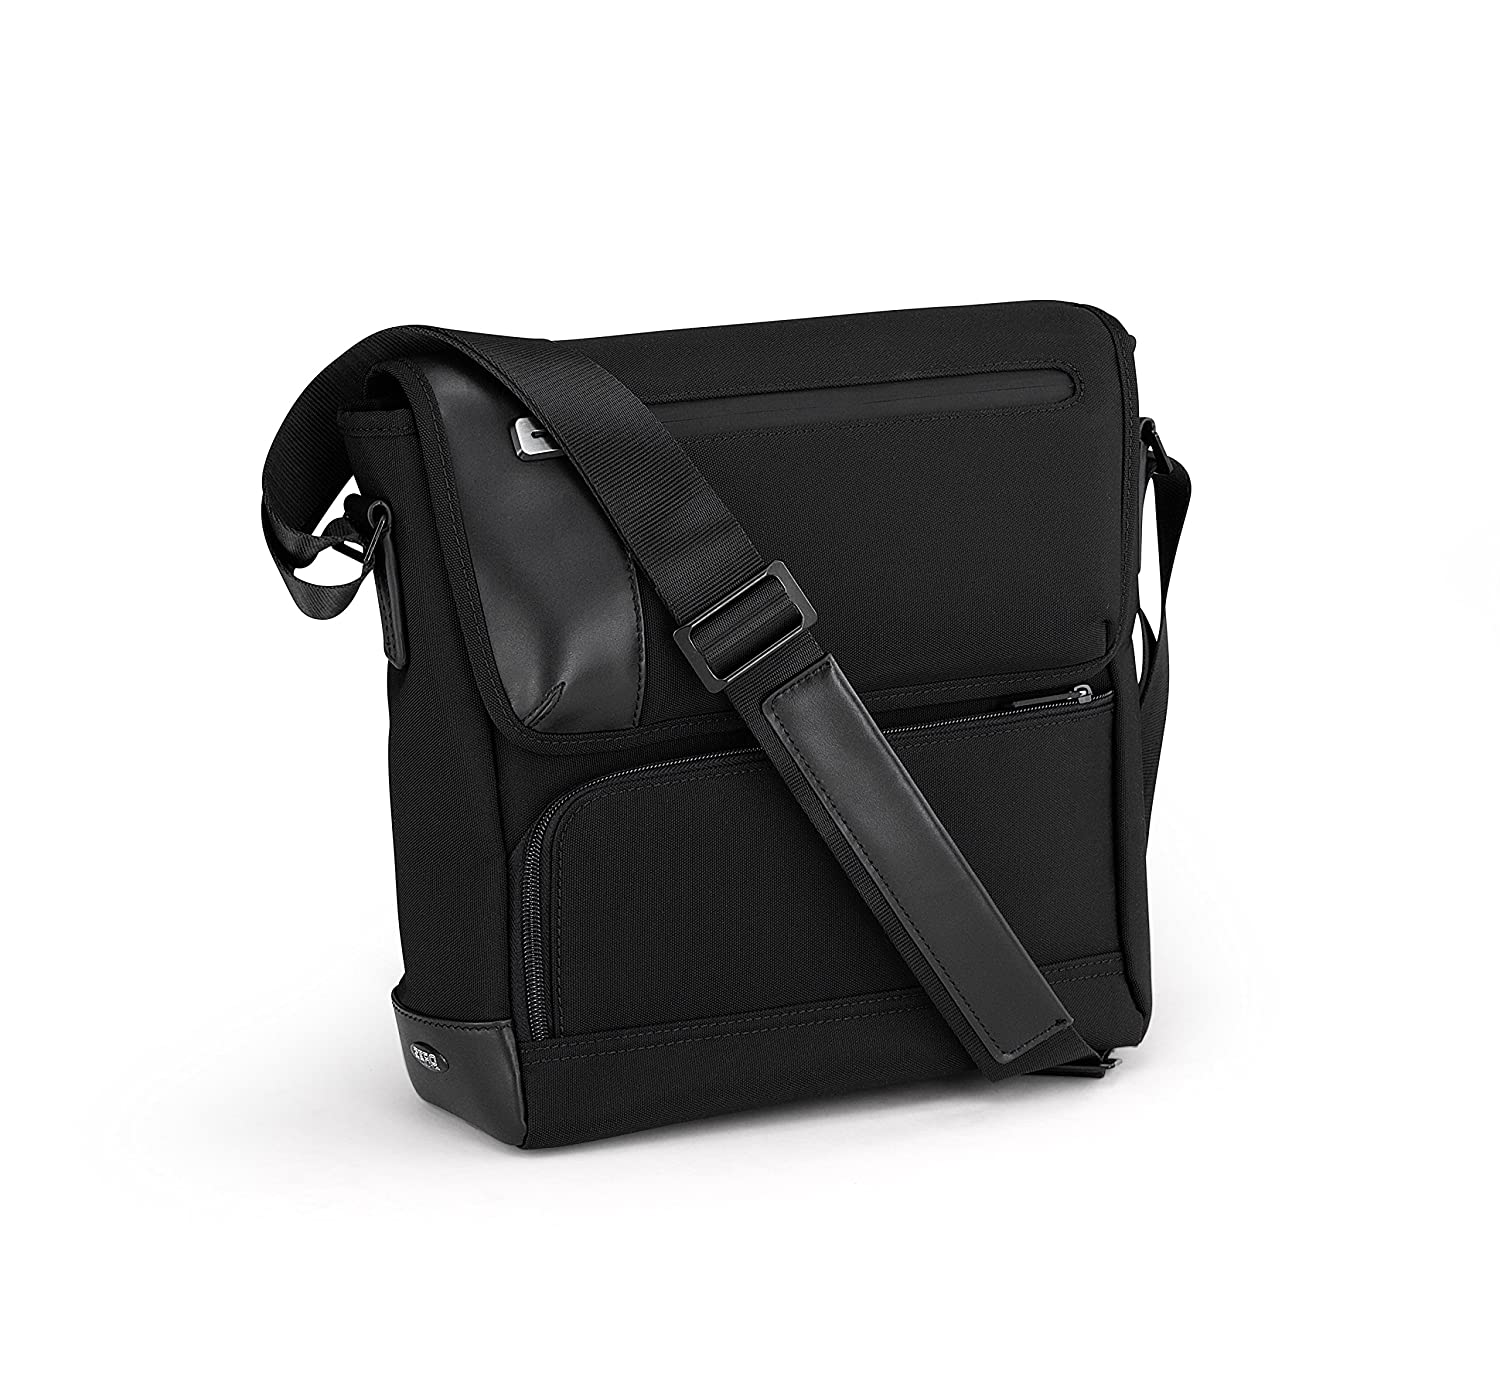 Pacsafe Citysafe Ls75 Anti Theft Crossbody Travel Bag  1b1ff5e6d9786